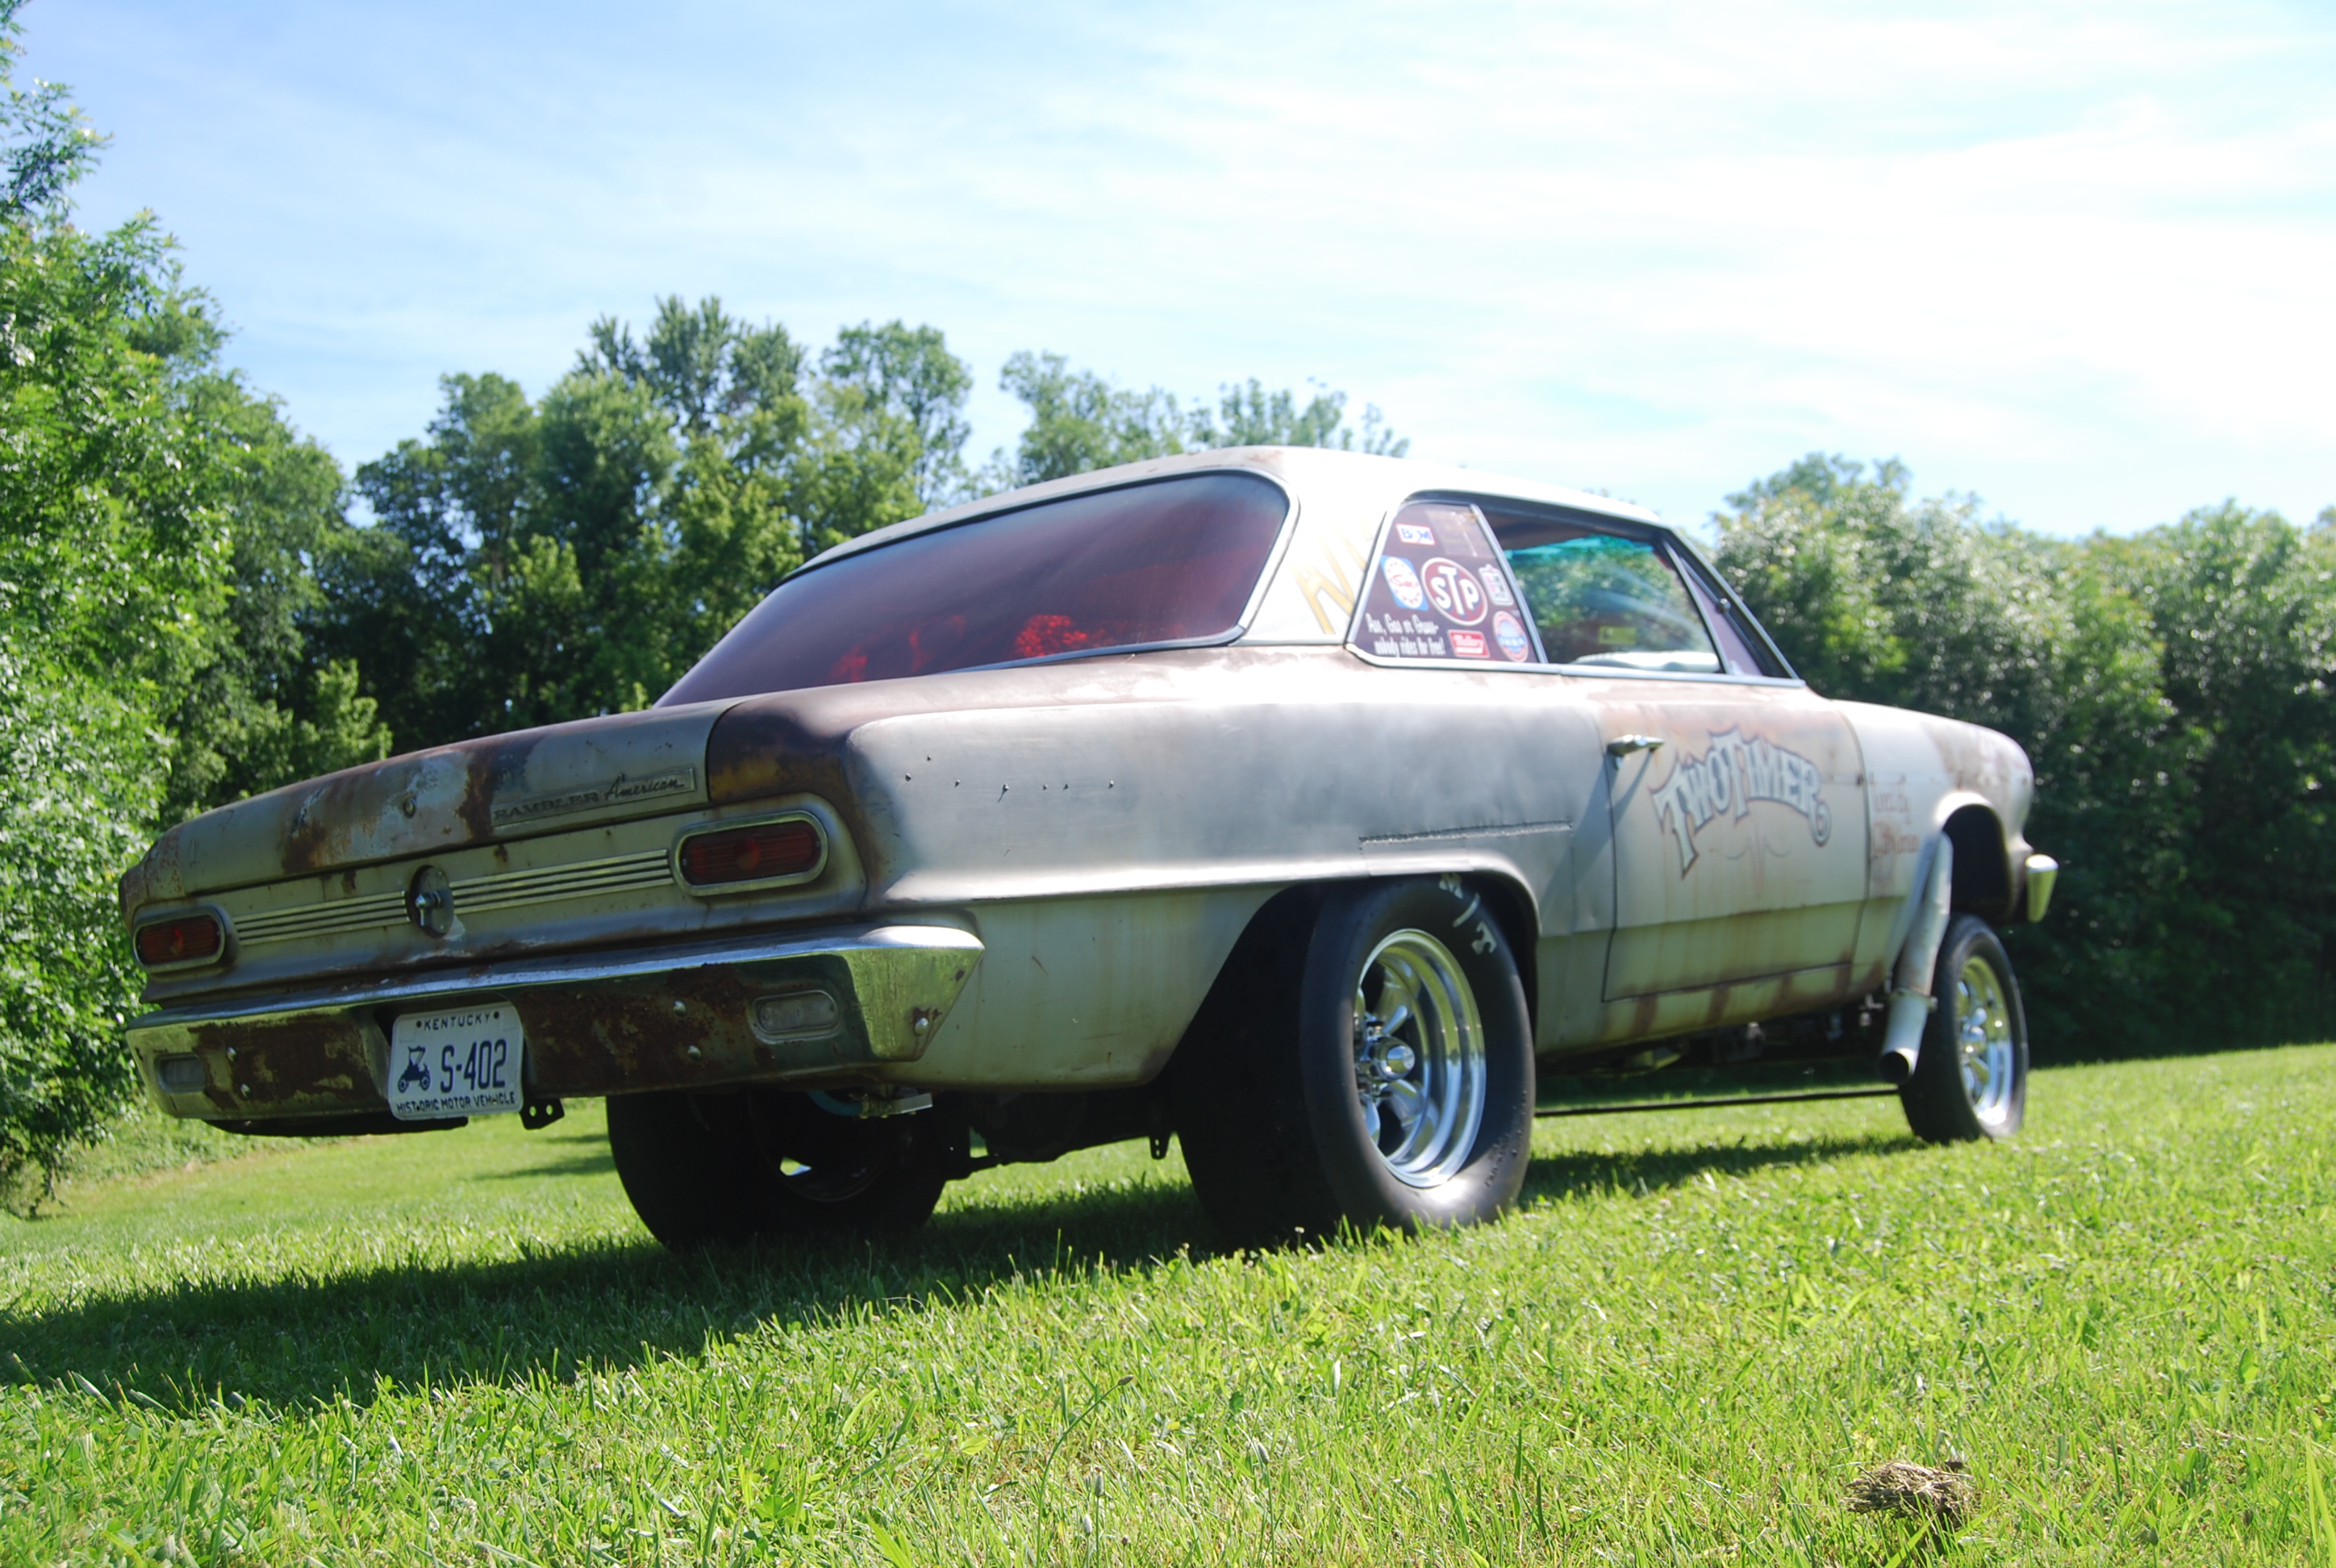 """2014 Holley National Hot Rod Reunion Feature Car: The """"Two Timer"""" 1964 Rambler American"""